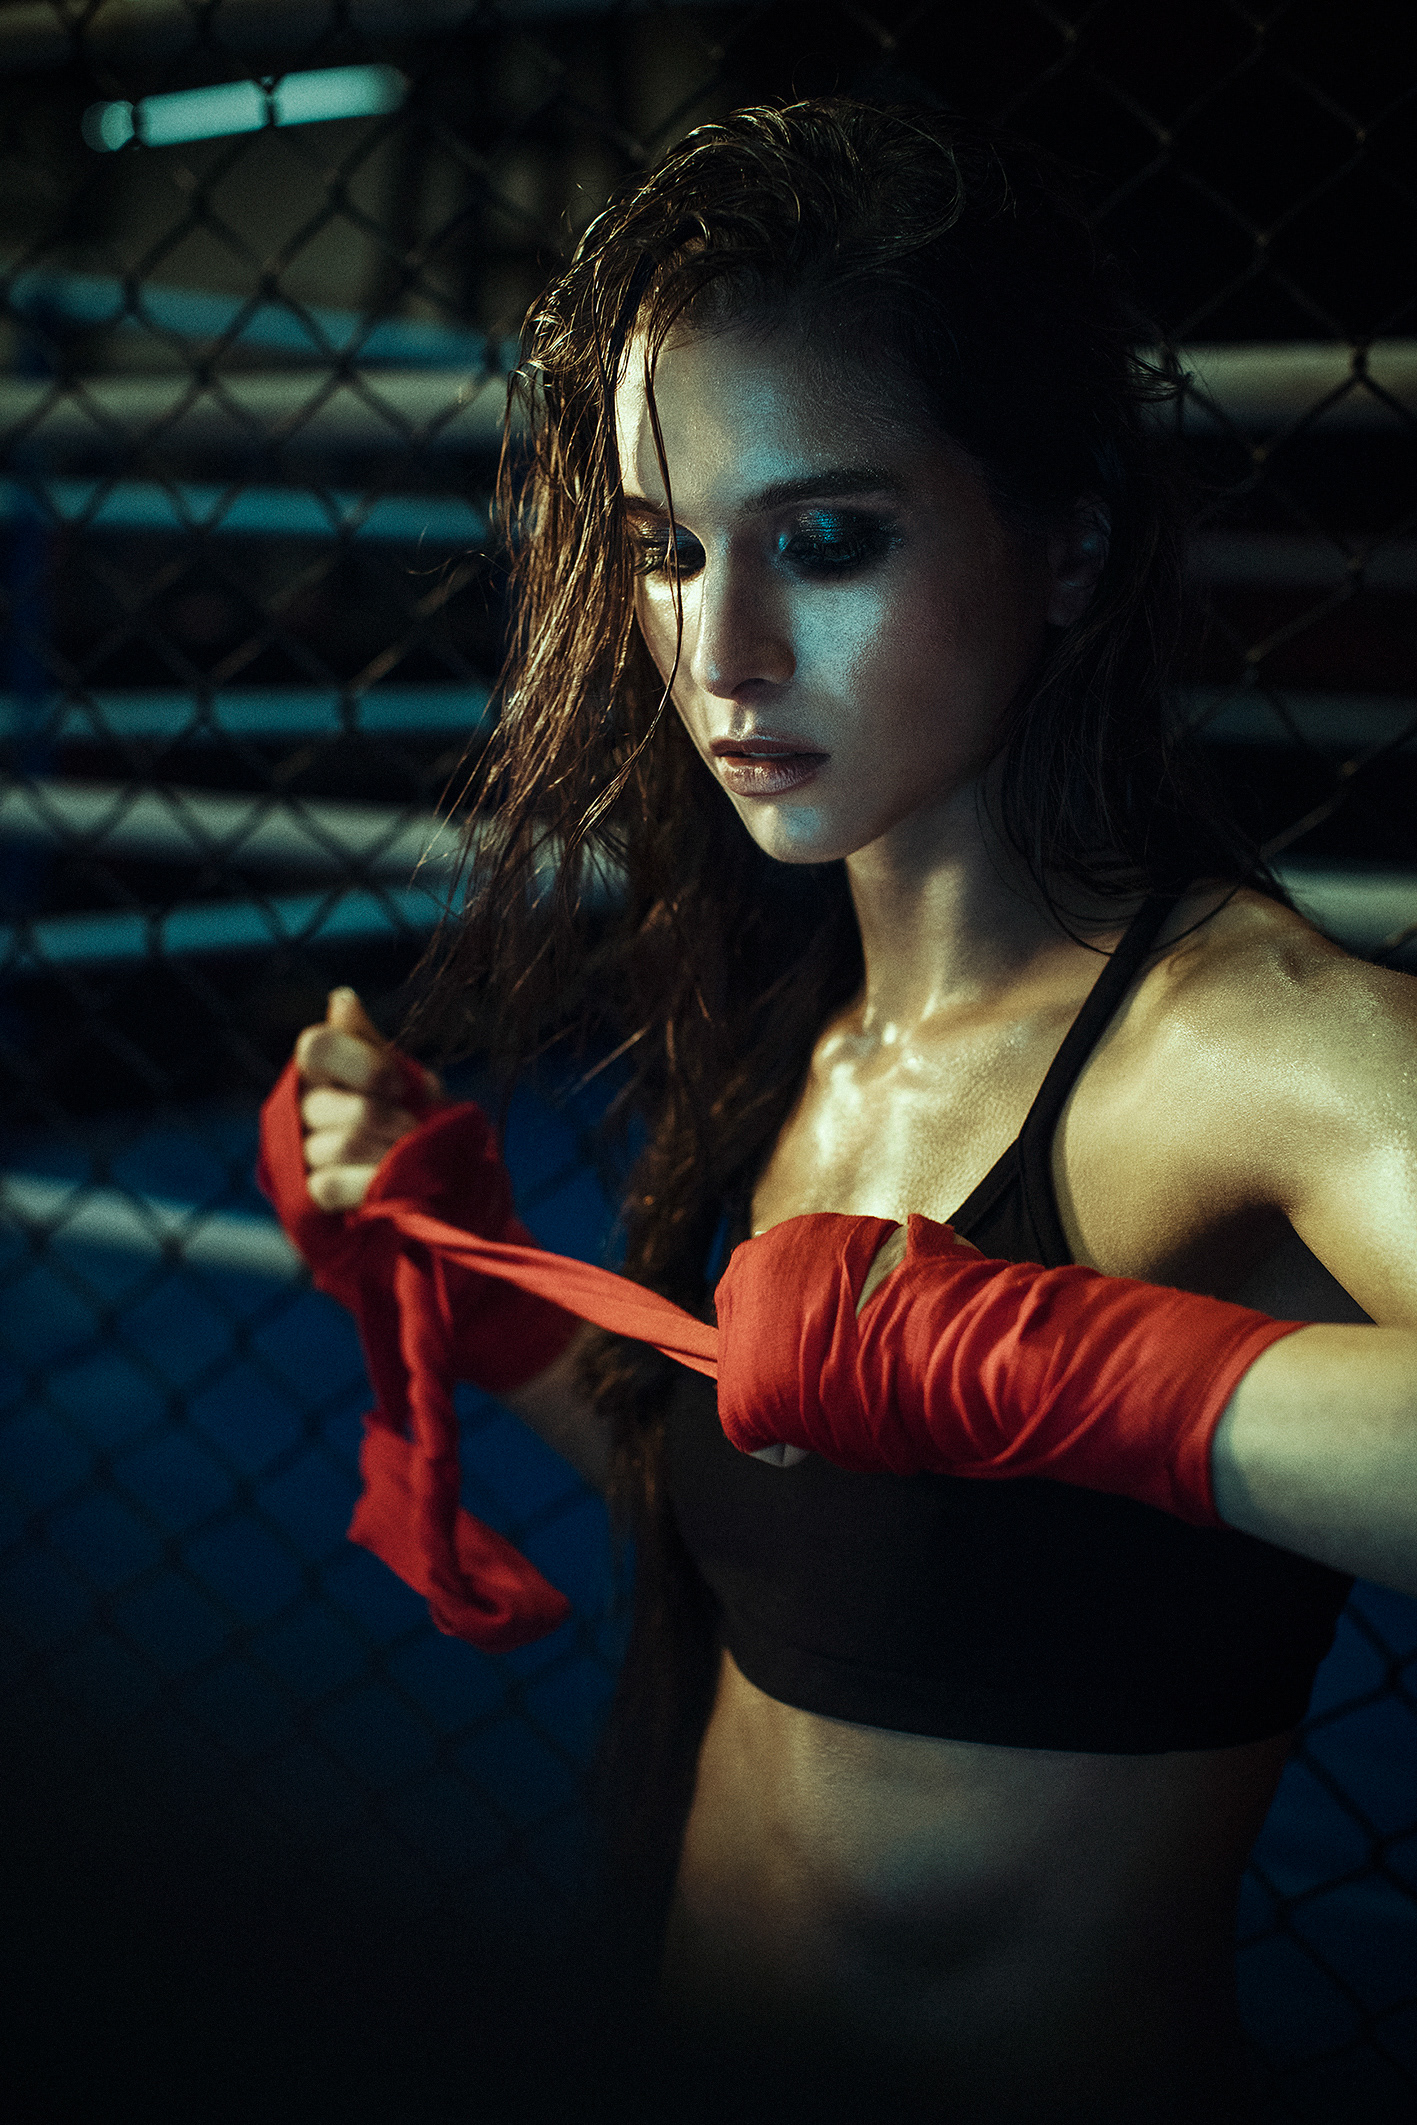 official-music-video-with-girls-boxing-fucking-actors